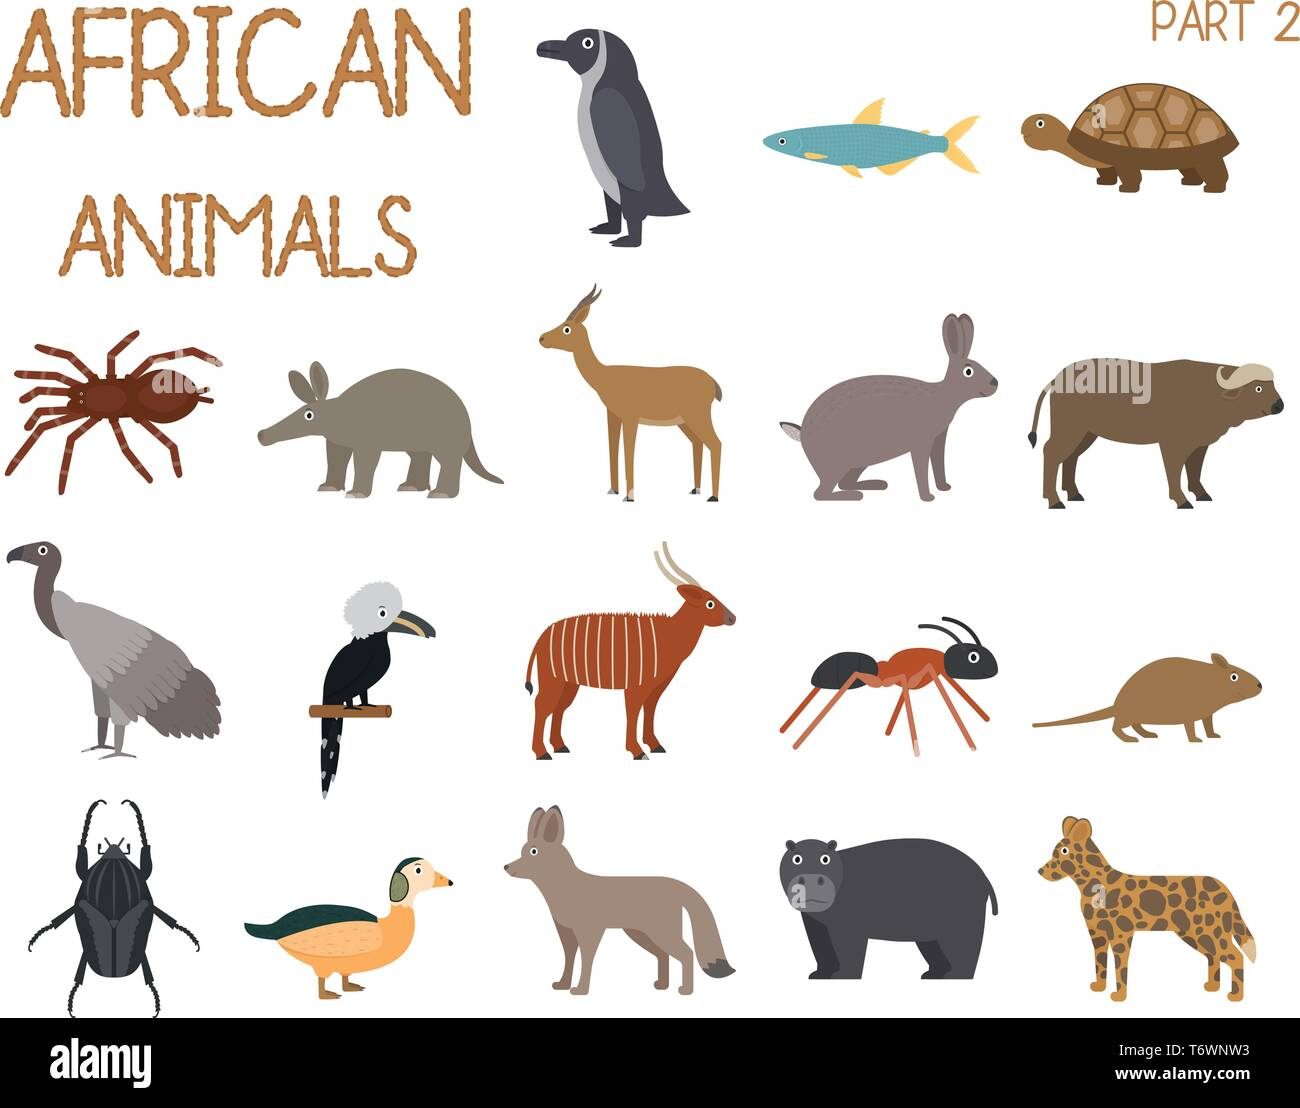 African animals set of icons in flat style, African fauna, dwarf goose, african vulture, buffalo, gazelle dorkas, etc. vector illustration - Stock Vector